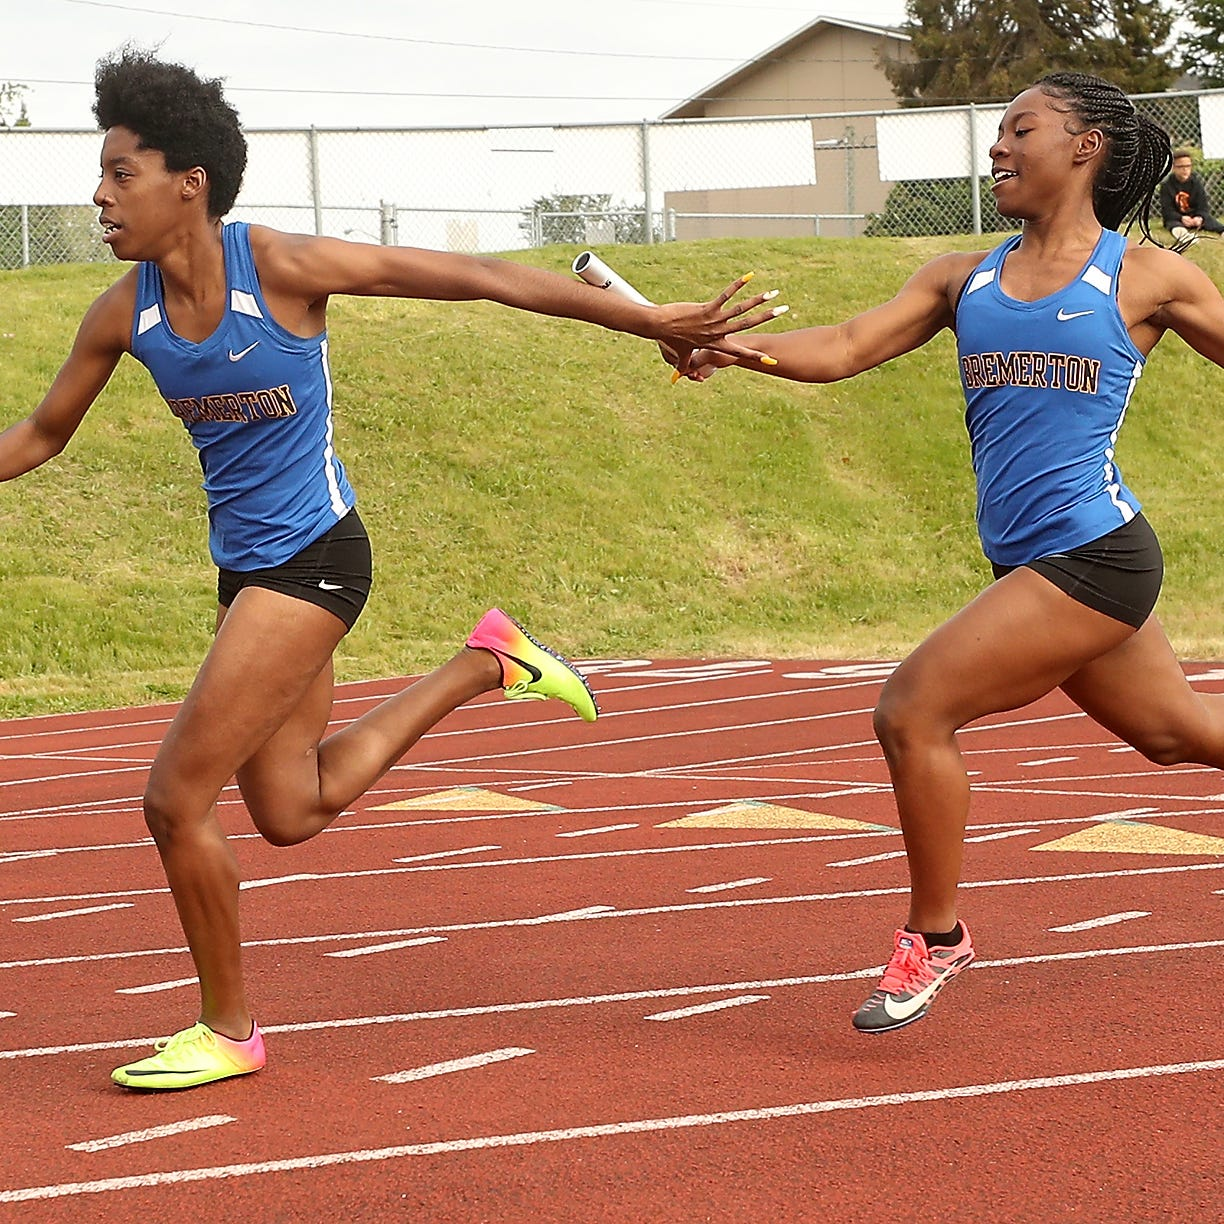 Bremerton's relay state champs ready to defend title